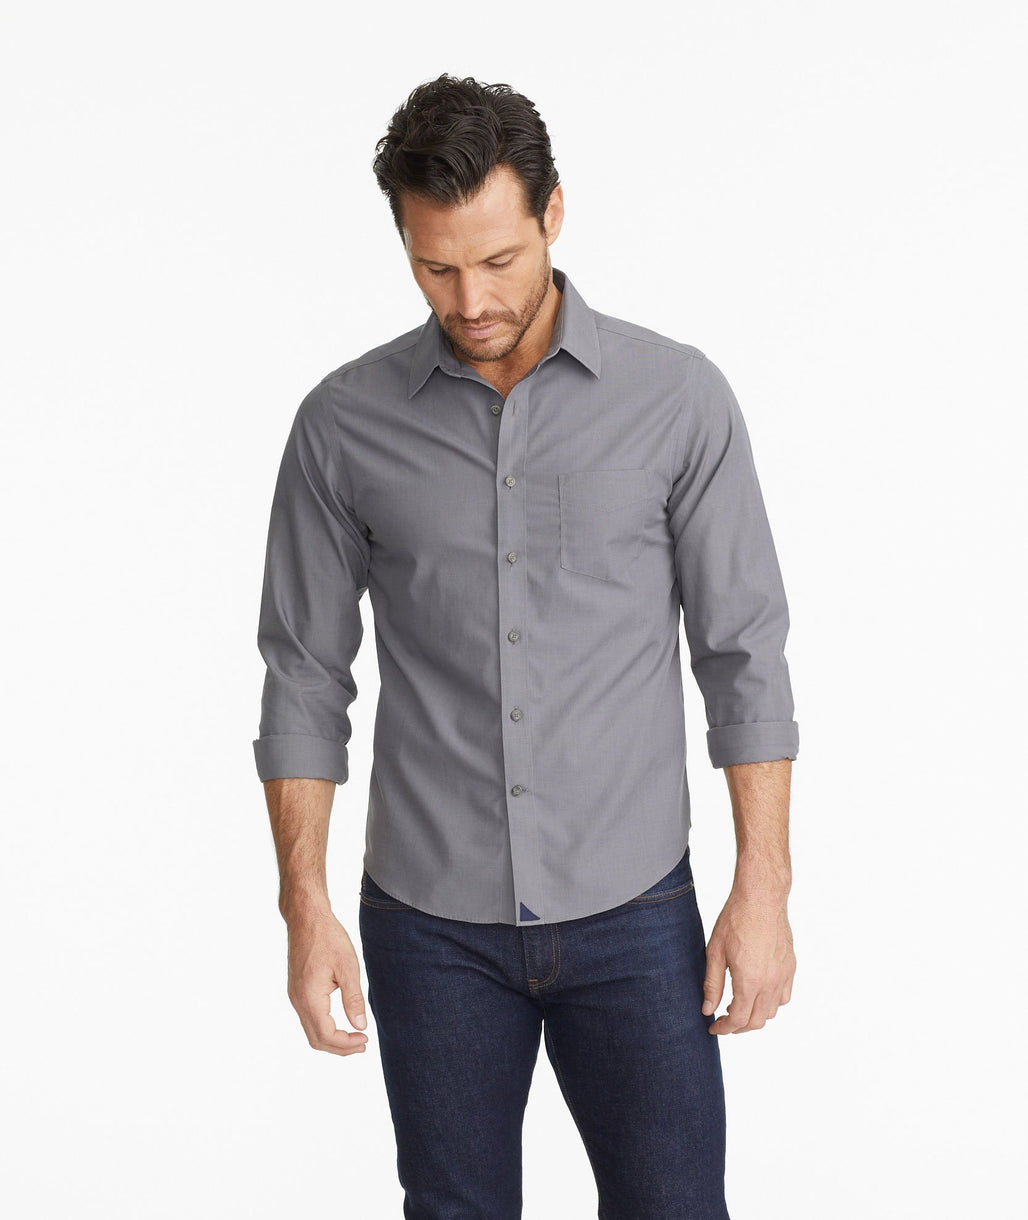 Model wearing a Grey Wrinkle-Free Sangiovese Shirt